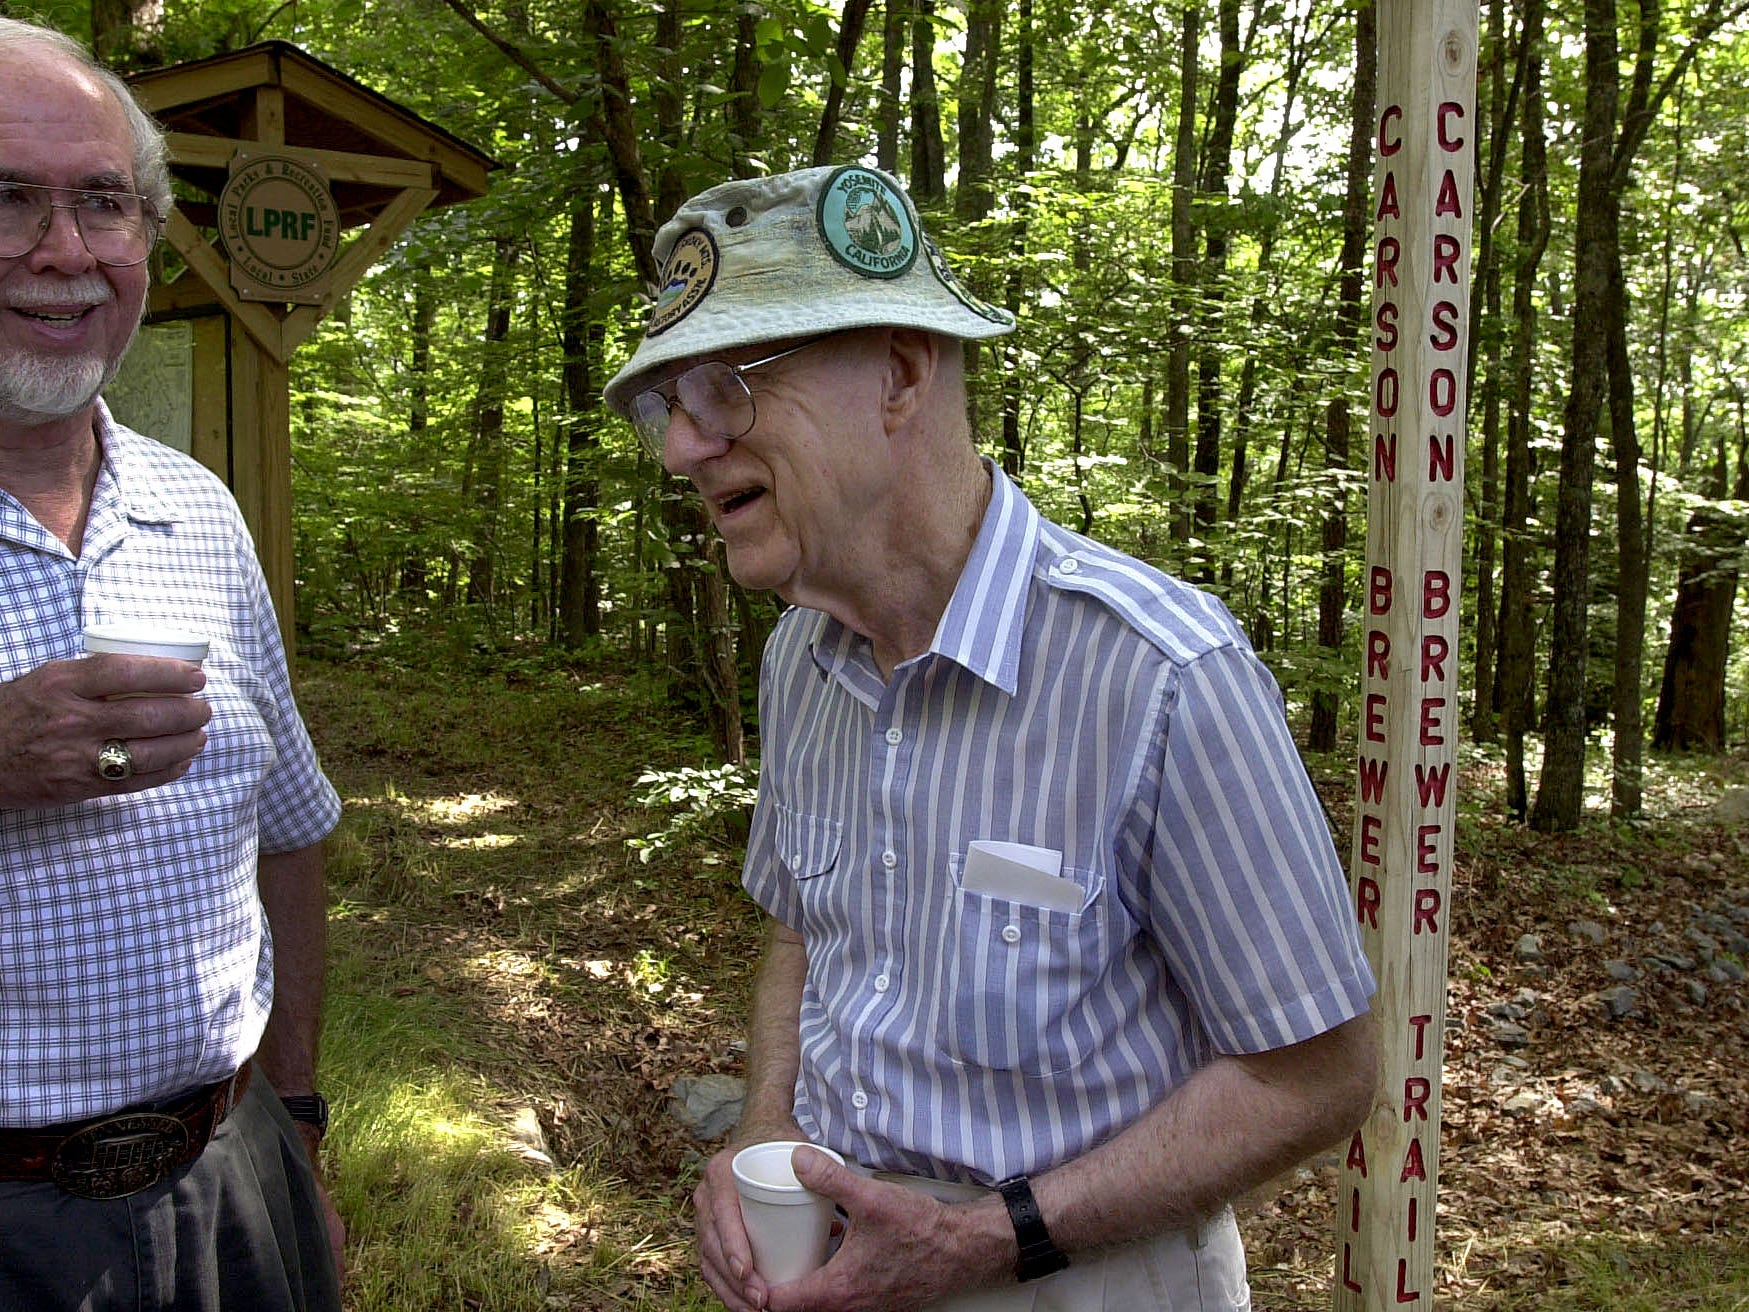 Carson Brewer,right, jokes with Ed McElheney, chairman of the Watershed Board in Norris, after the dedication of a new walking trail. The new trail which has two benches along the route is called the Carson Brewer Trail. The  1000 feet long paved trail was designed with slopes to meet handicapped accessible standards.